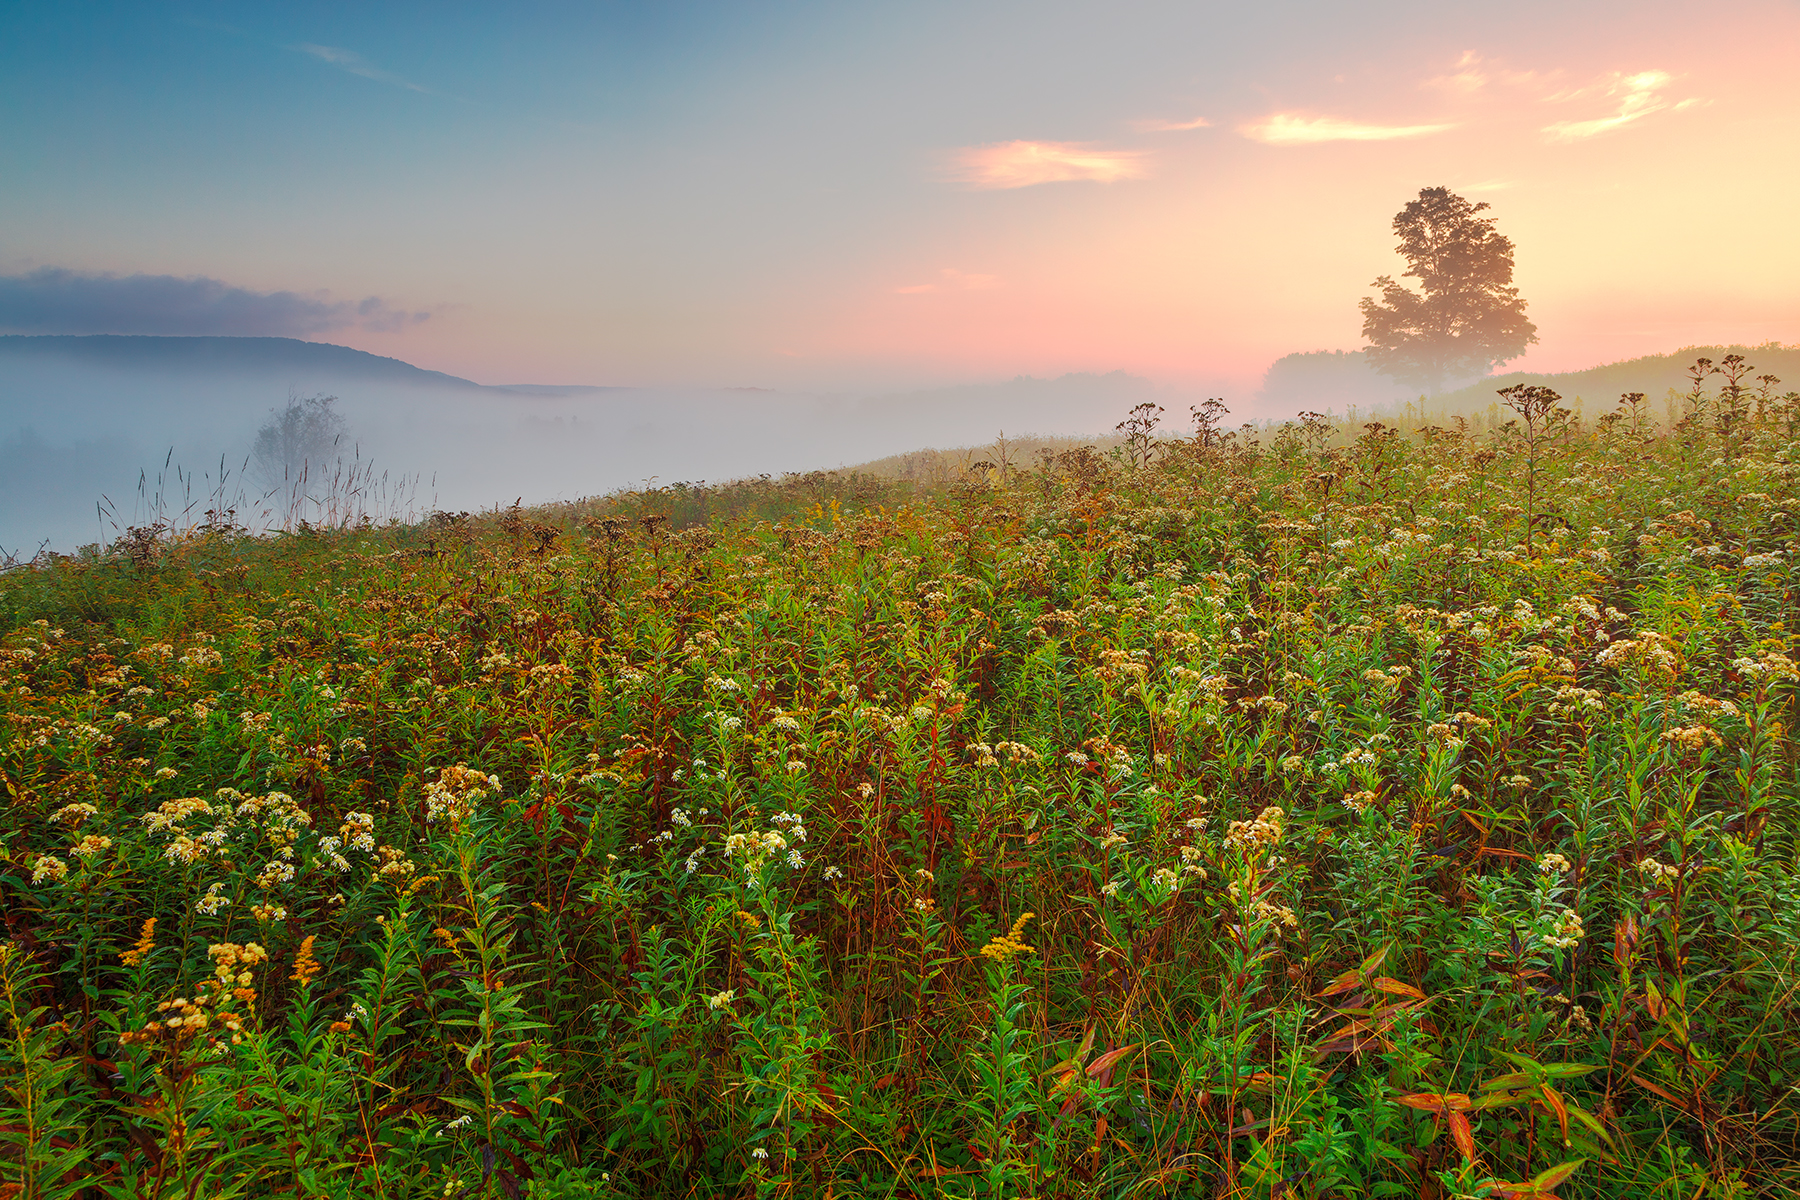 Misty canaan valley sunrise - hdr photo